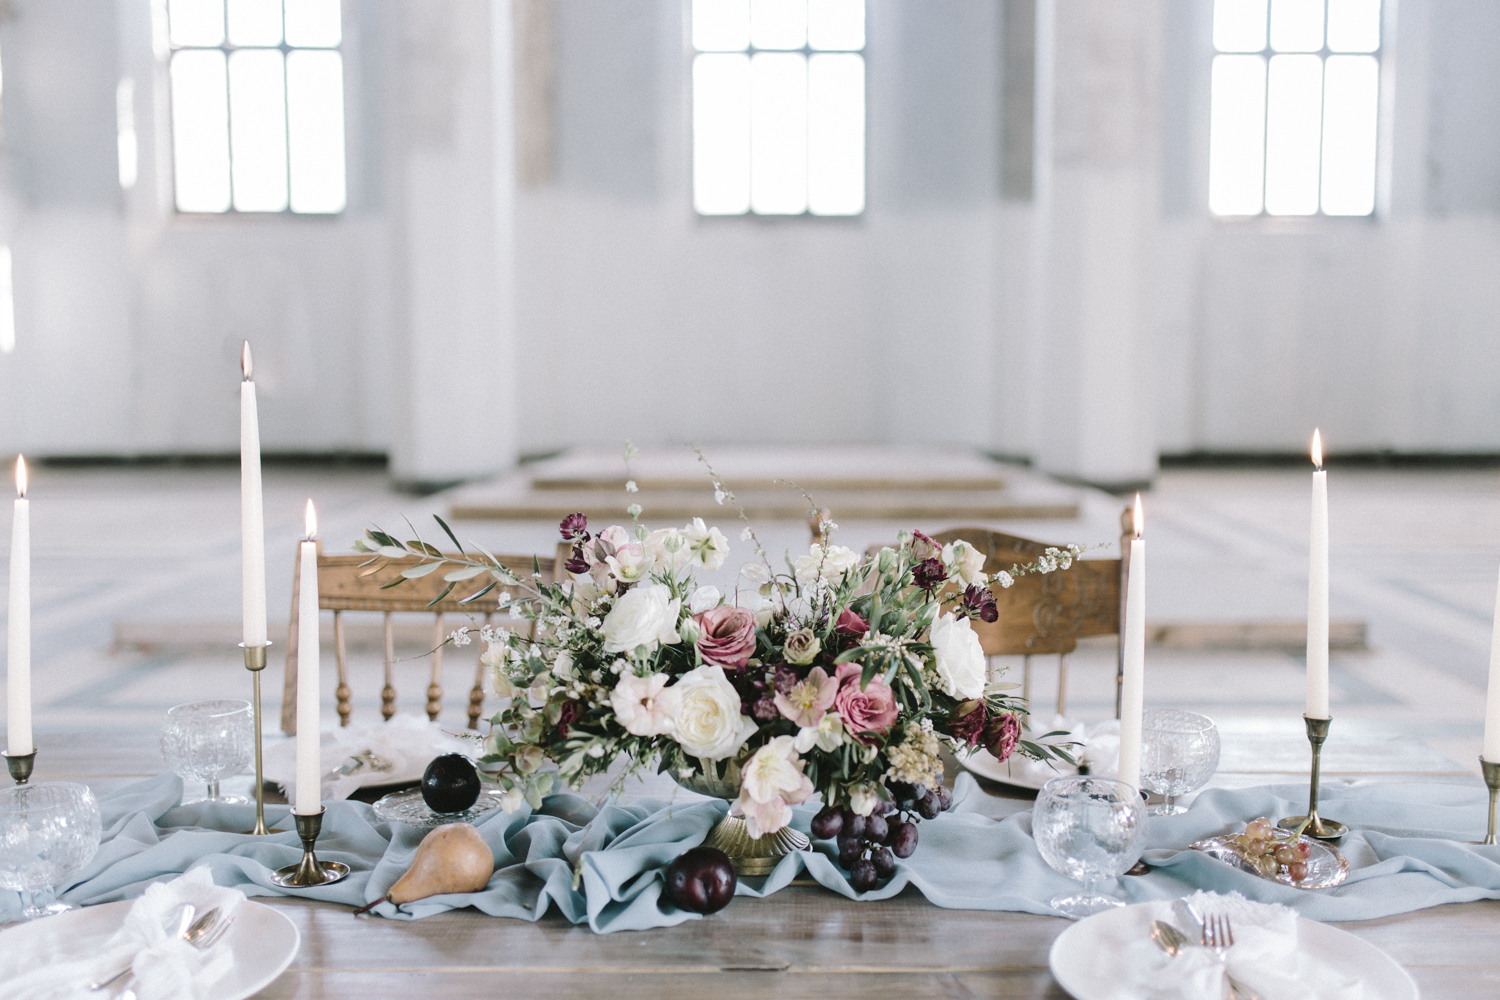 A wedding reception table in an abandoned cathedral with a floral centerpiece with grapes